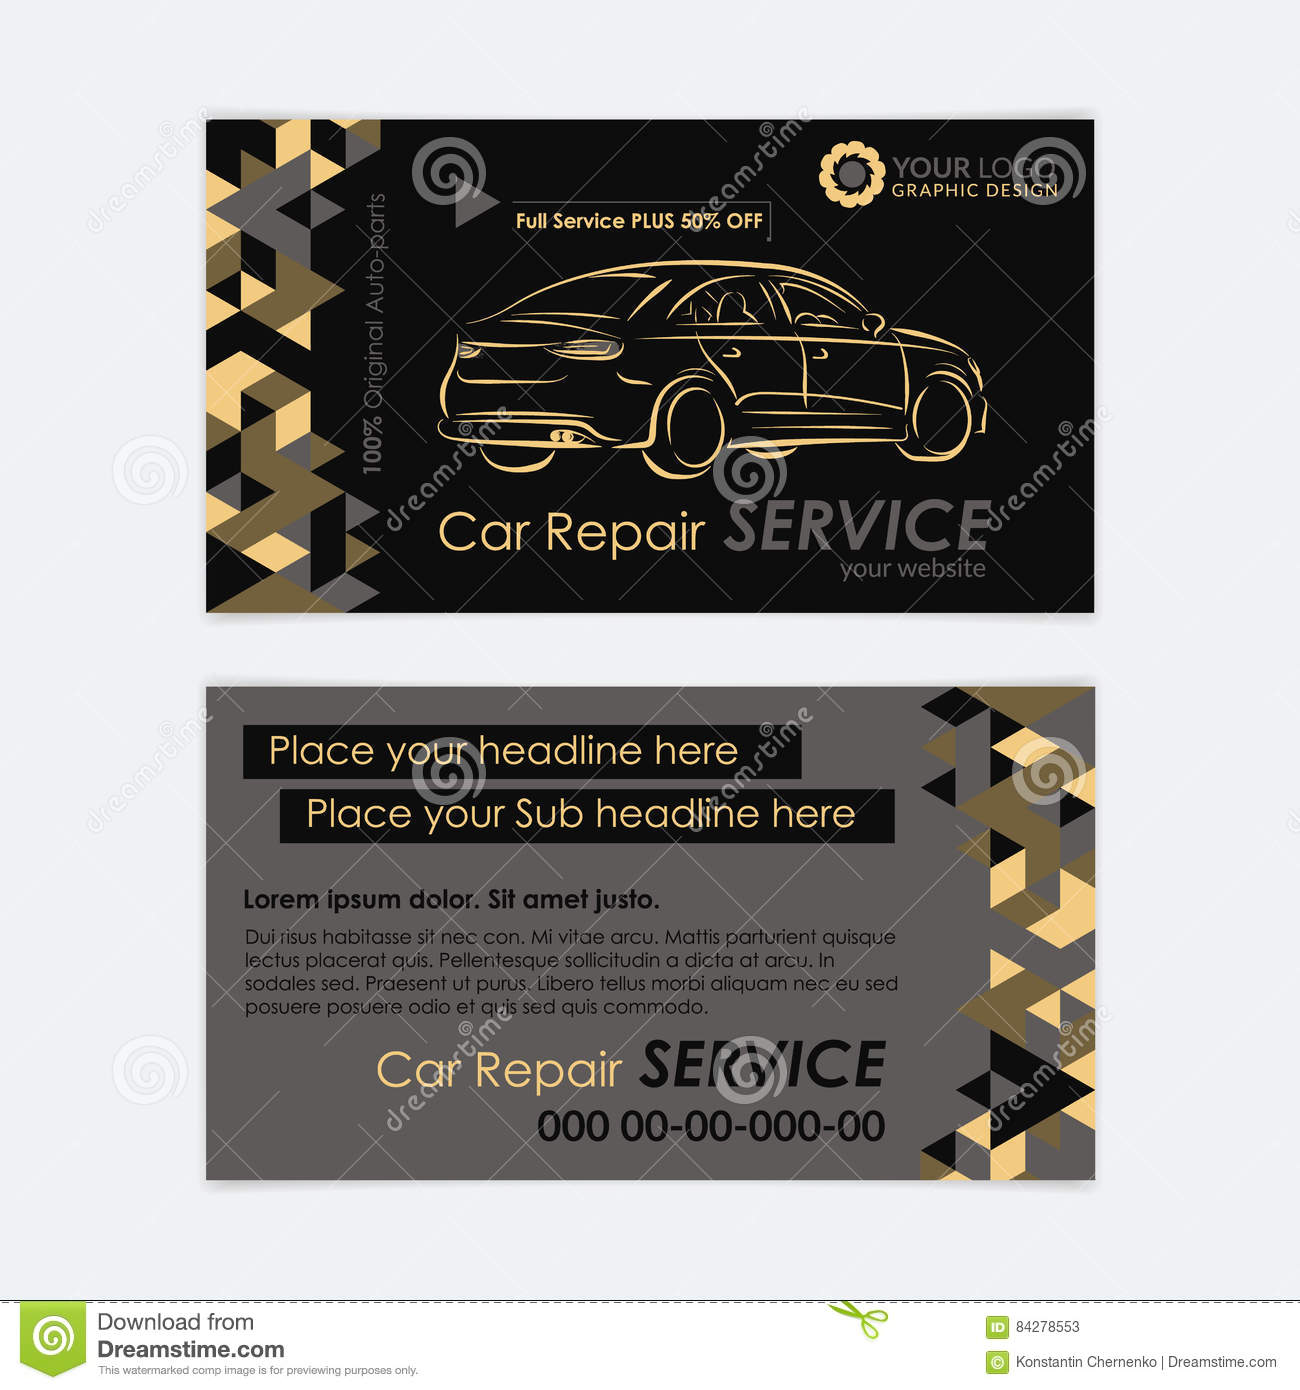 Automotive service business card template car diagnostics and automotive service business card template car diagnostics and transport repair create your own business cards accmission Choice Image